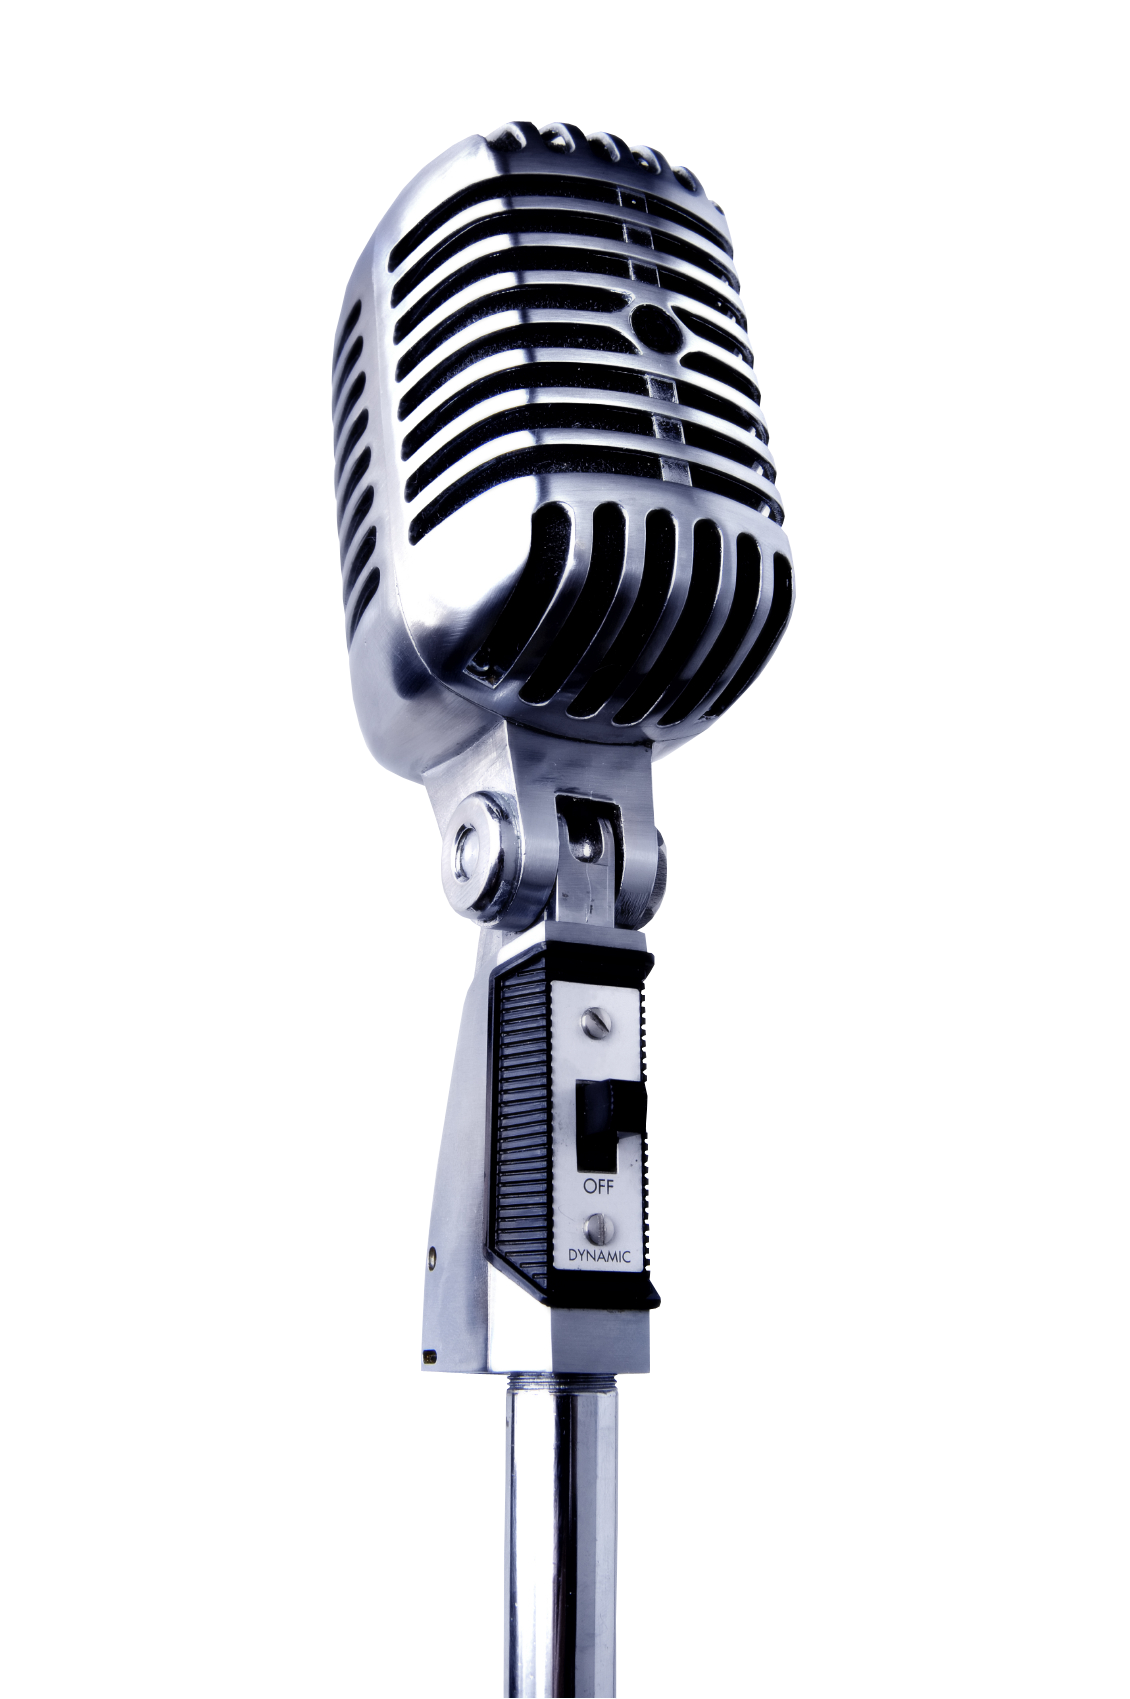 microphone transparent Microphone clipart transparent background pencil and in color png